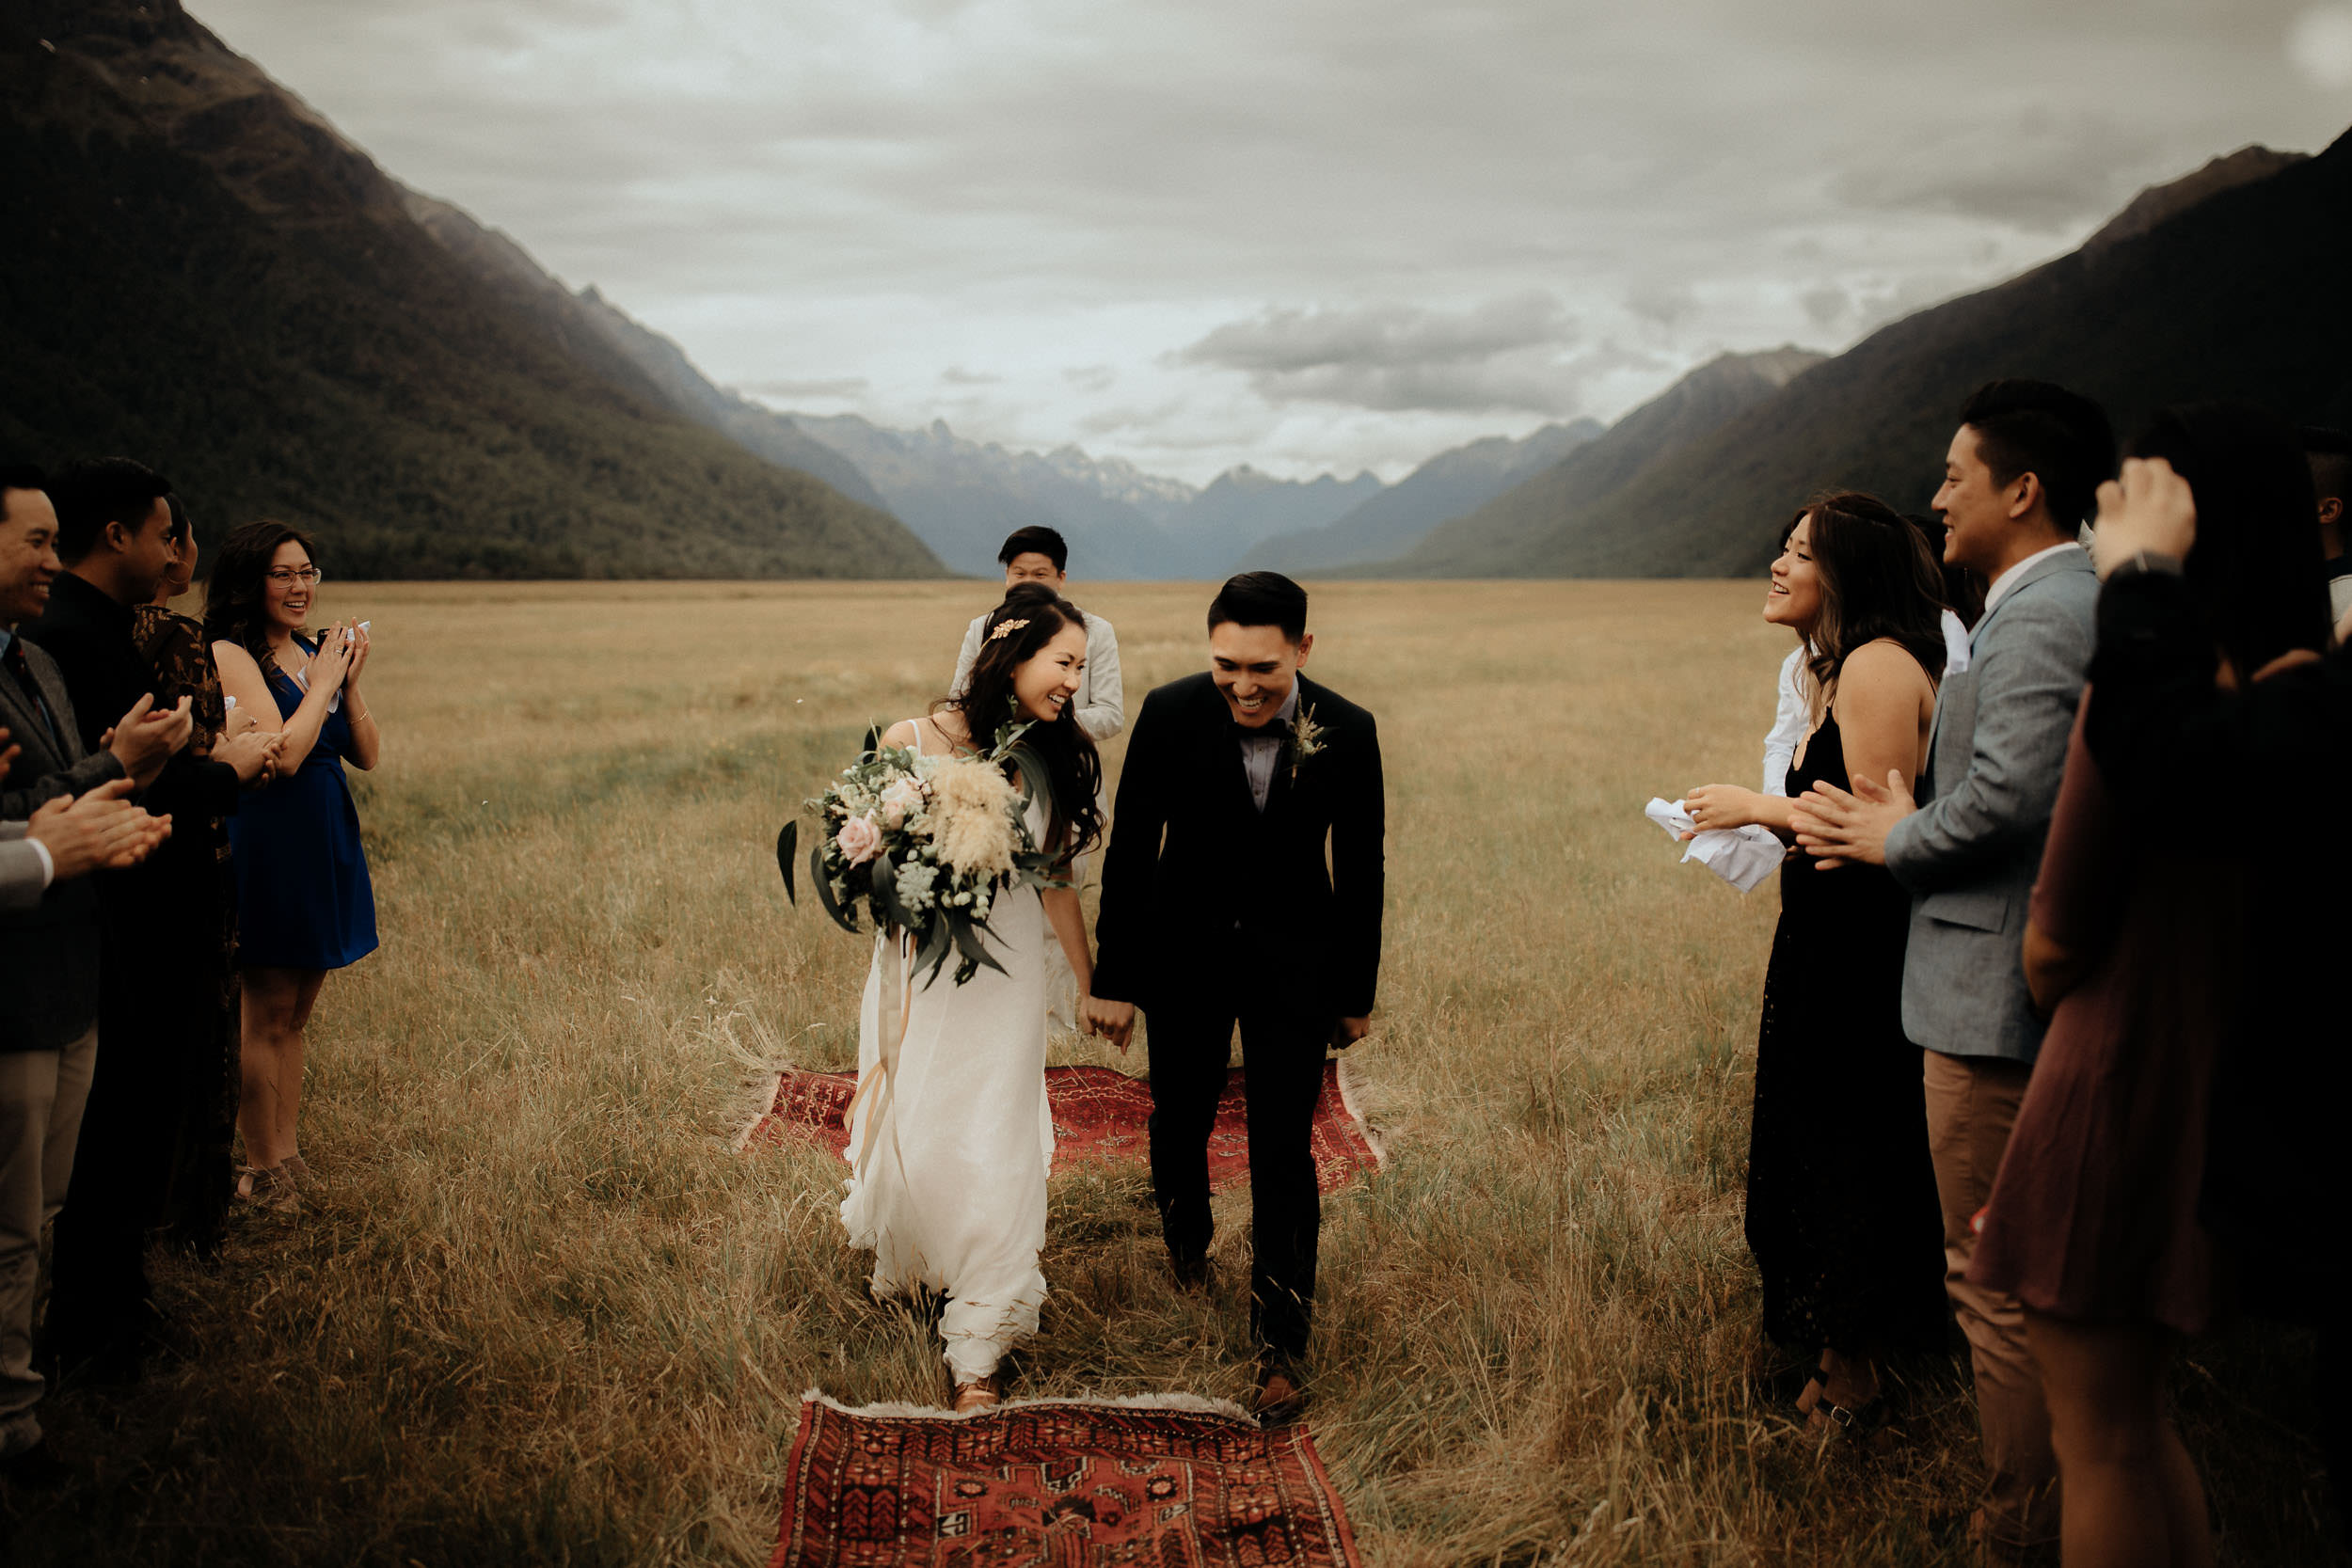 new-zealand-wedding-photographer-1-9.jpg